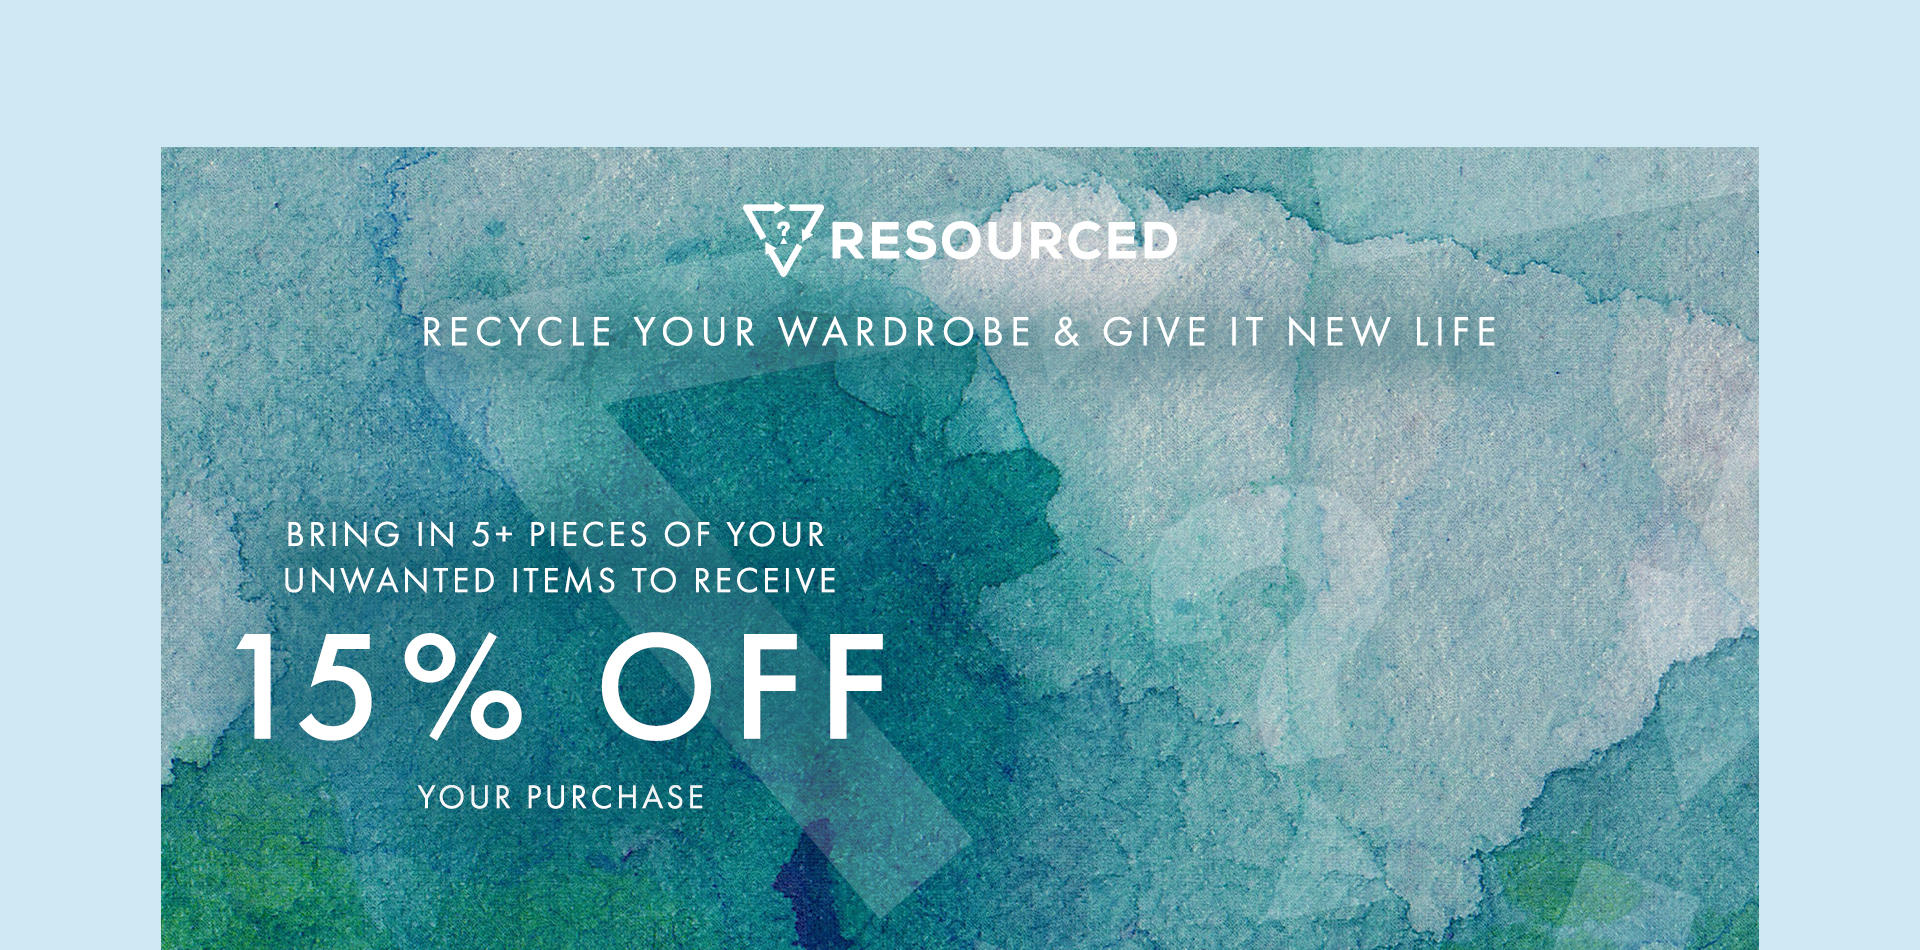 recycle your wardrobe give it new life